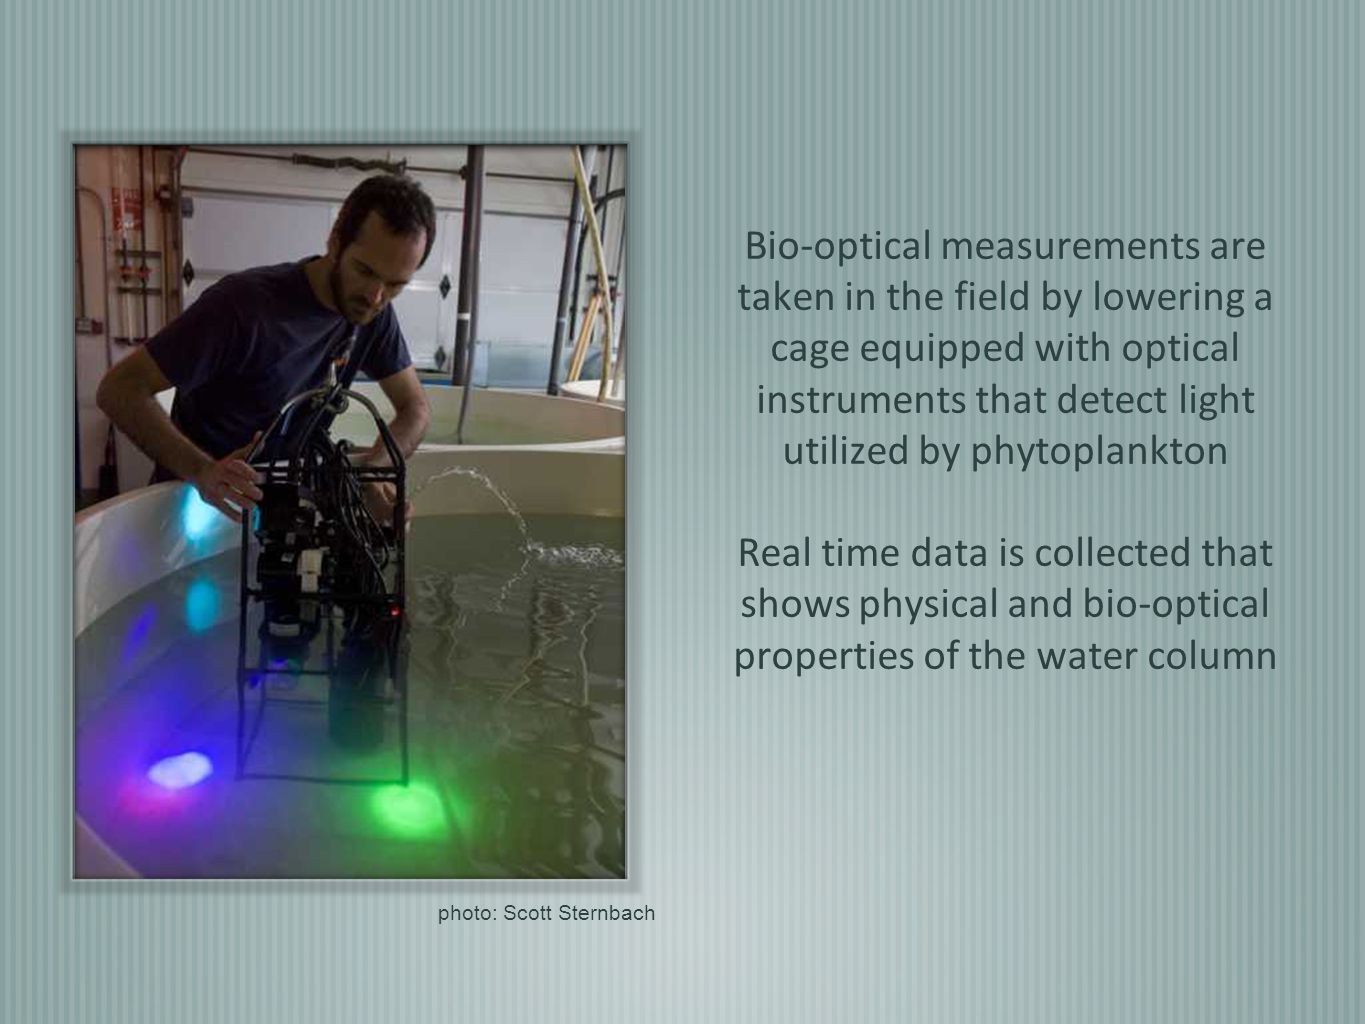 Bio-optical measurements are taken in the field by lowering a cage equipped with optical instruments that detect light utilized by phytoplankton Real time data is collected that shows physical and bio-optical properties of the water column photo: Scott Sternbach